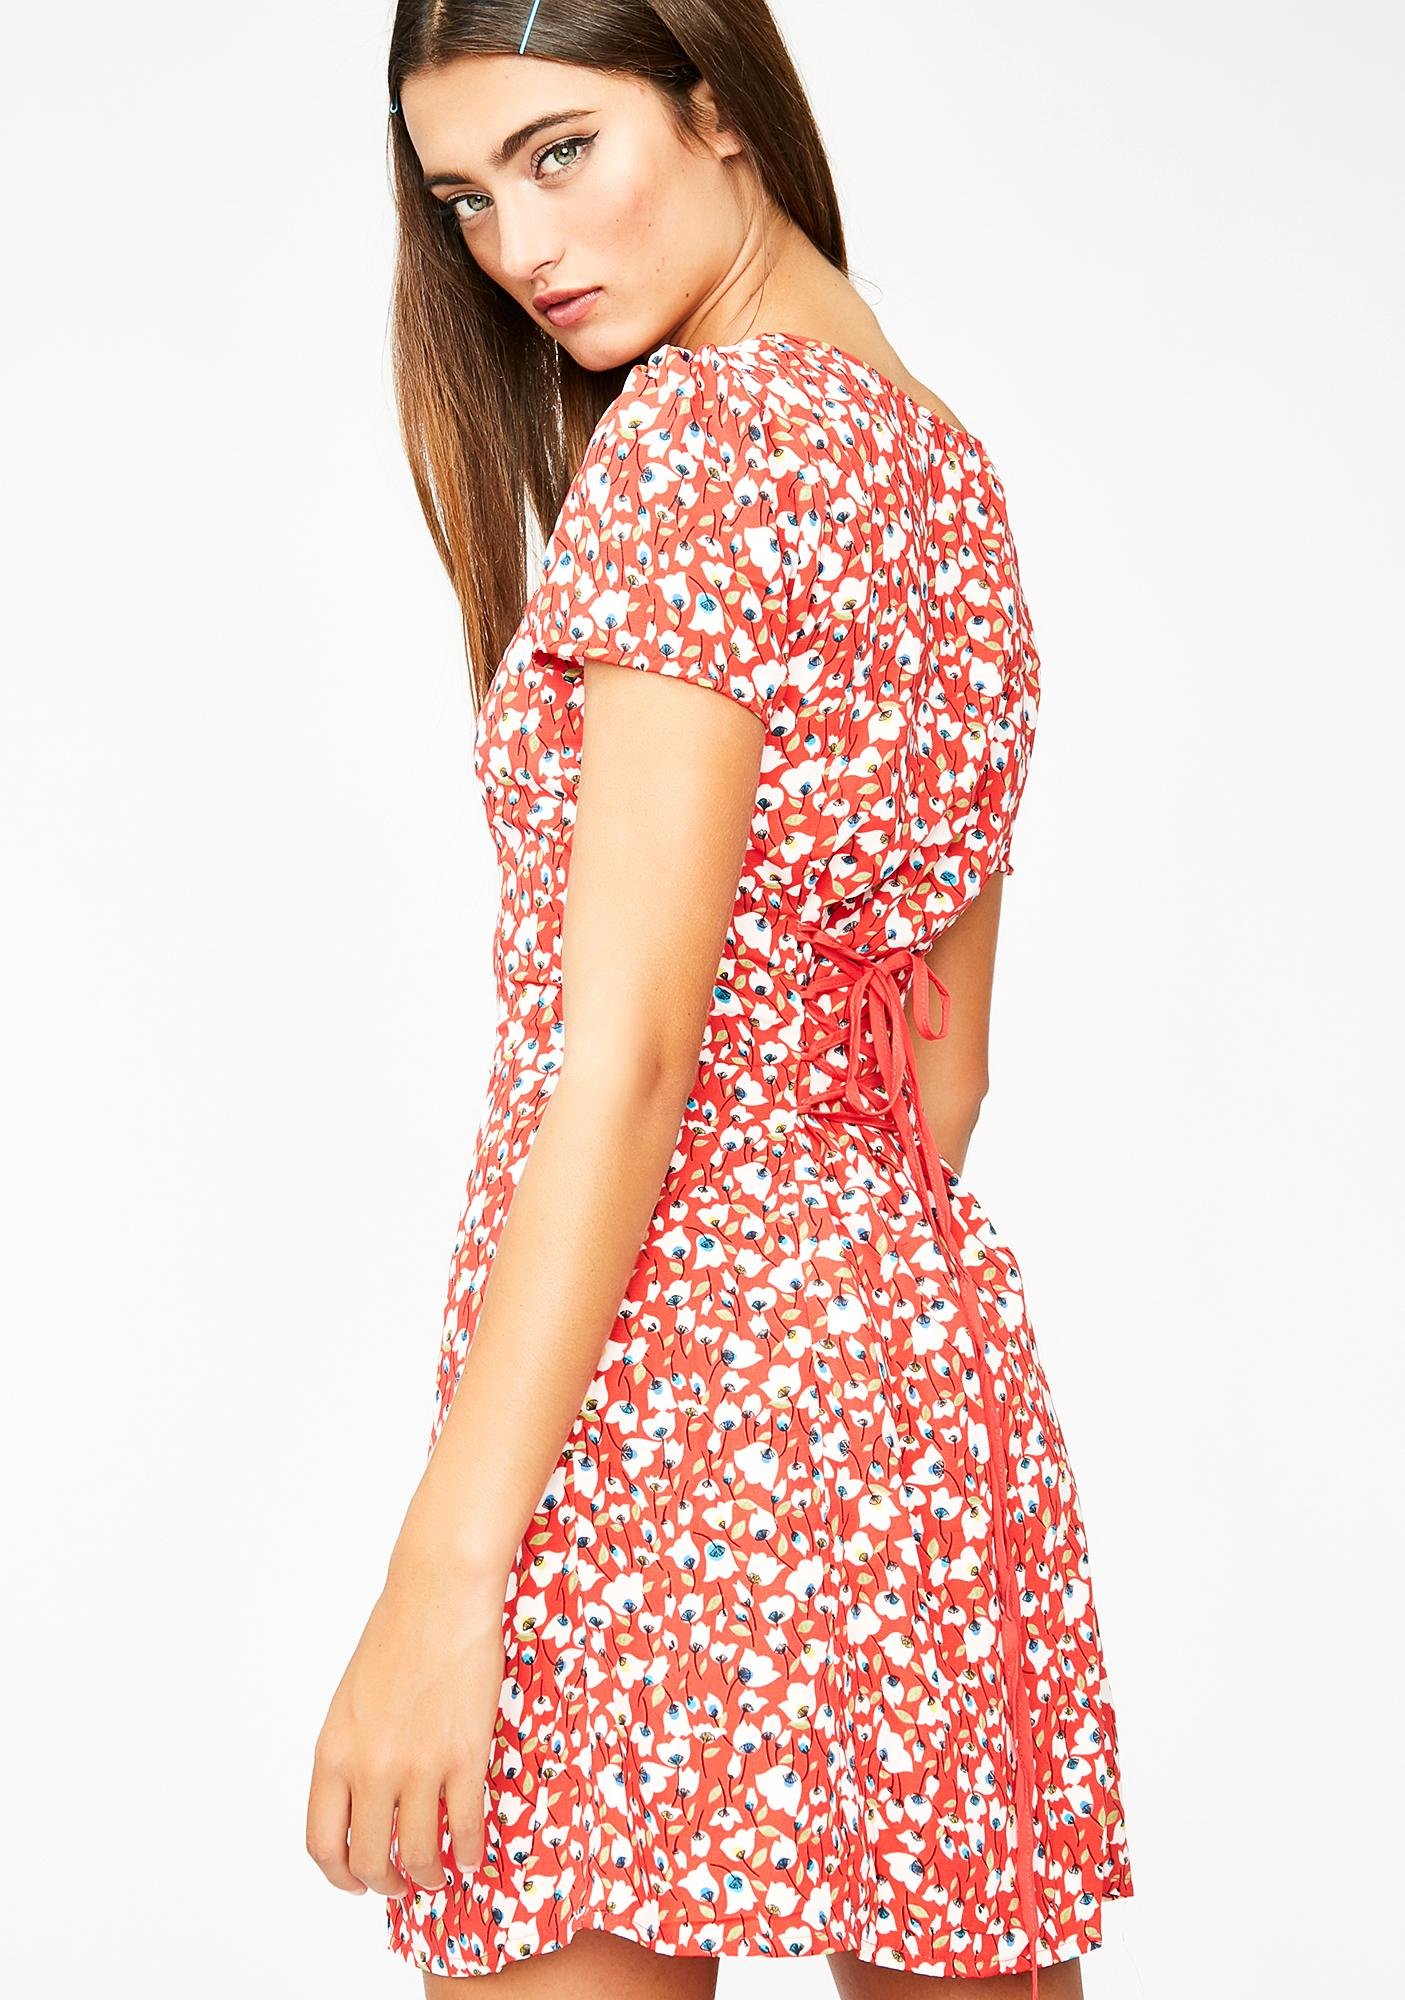 Fall In Luv Floral Dress